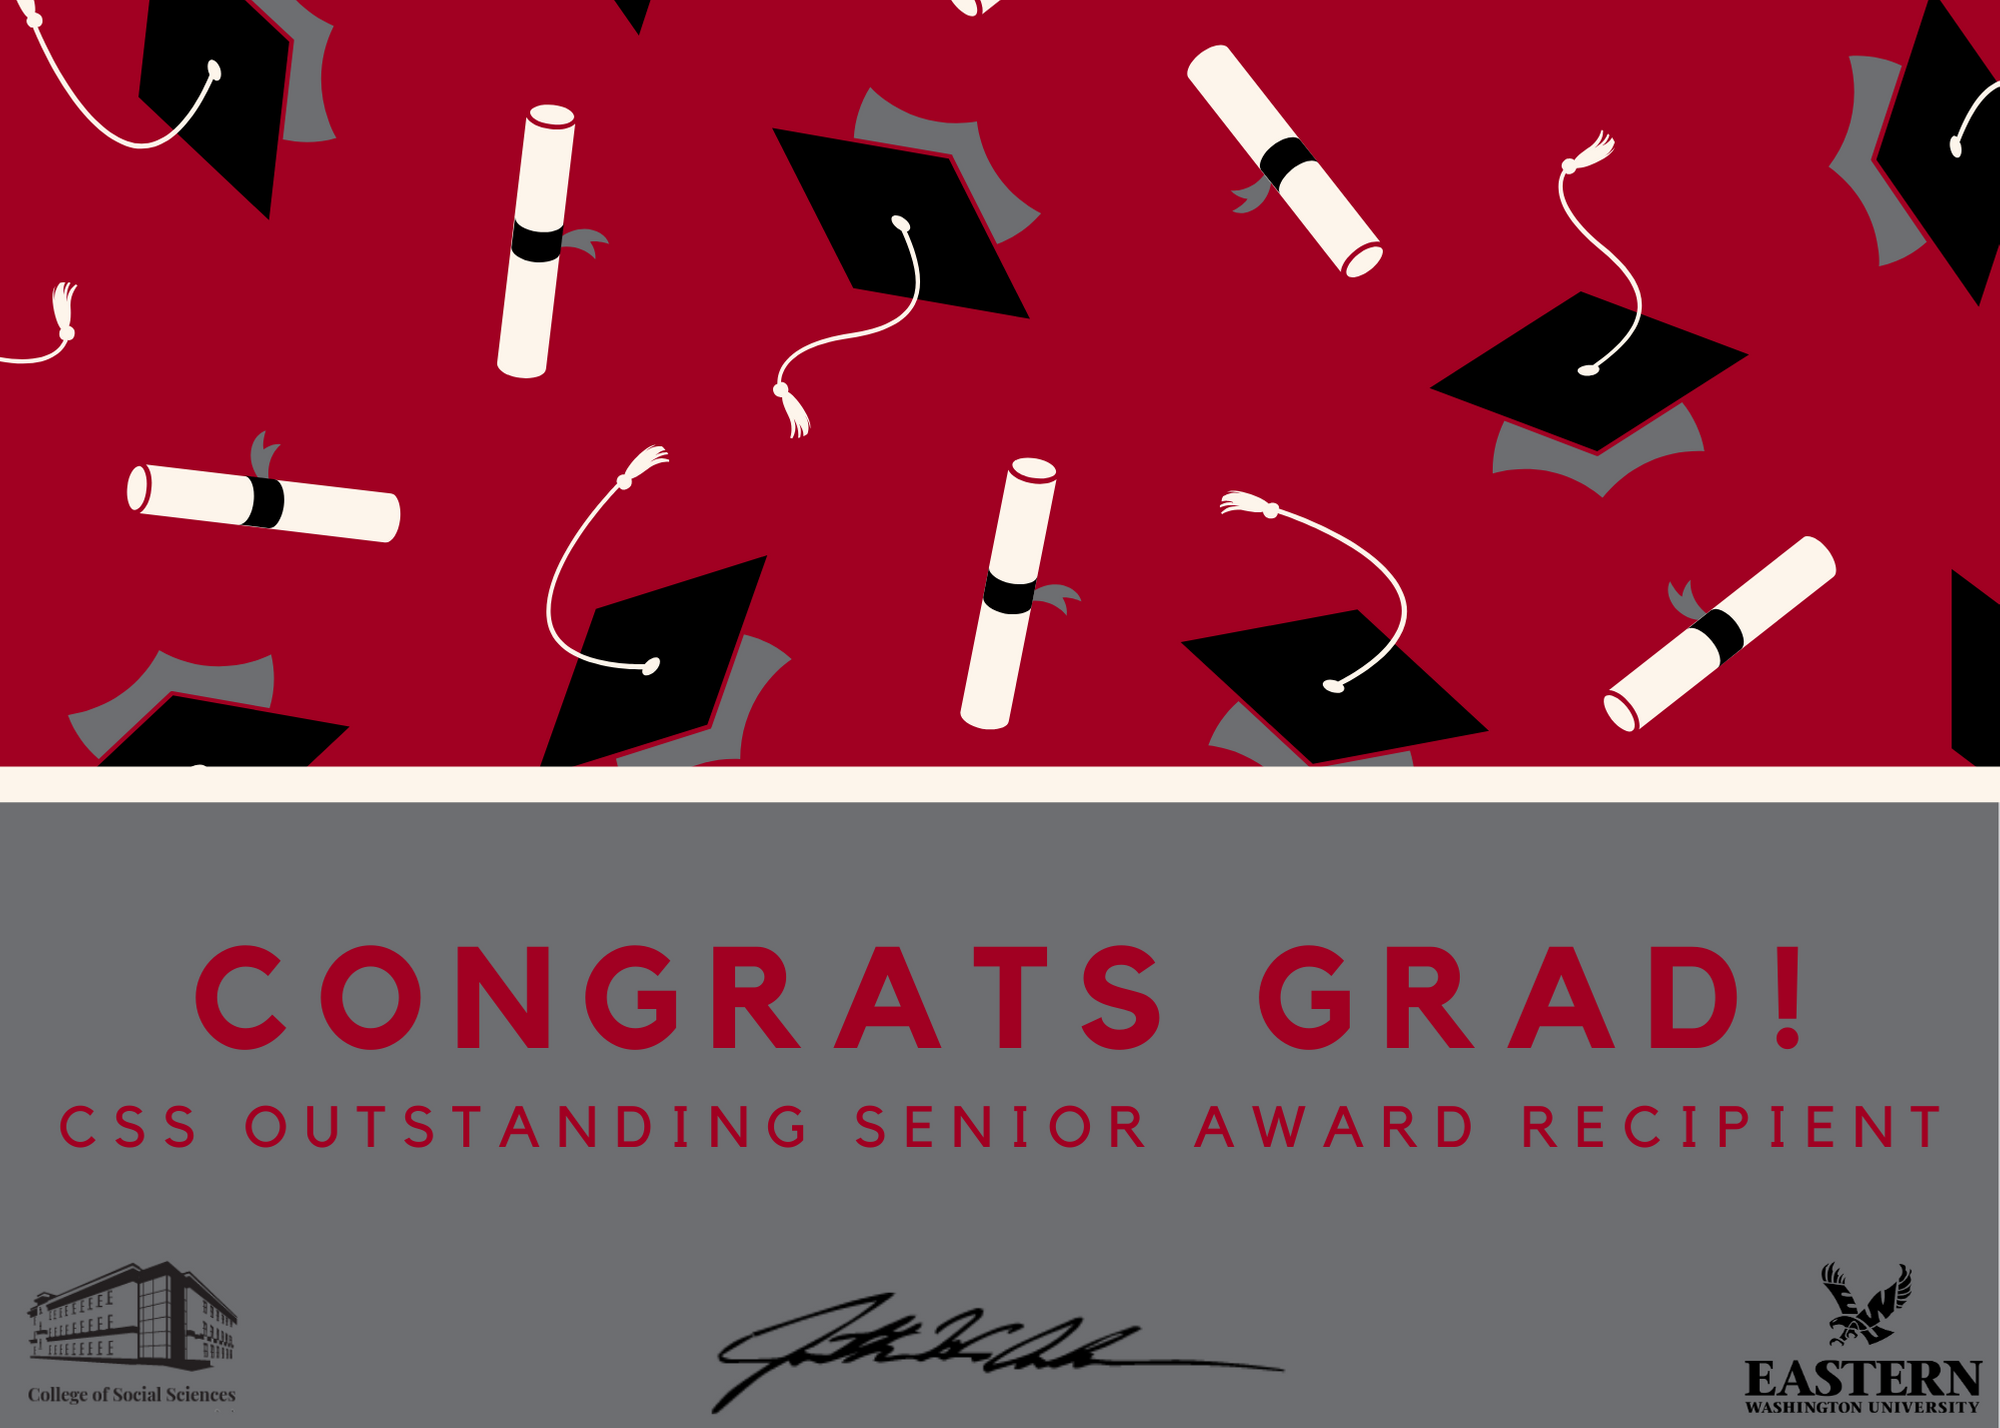 4151-caps-and-diplomas-pattern-graduation-card-2.png